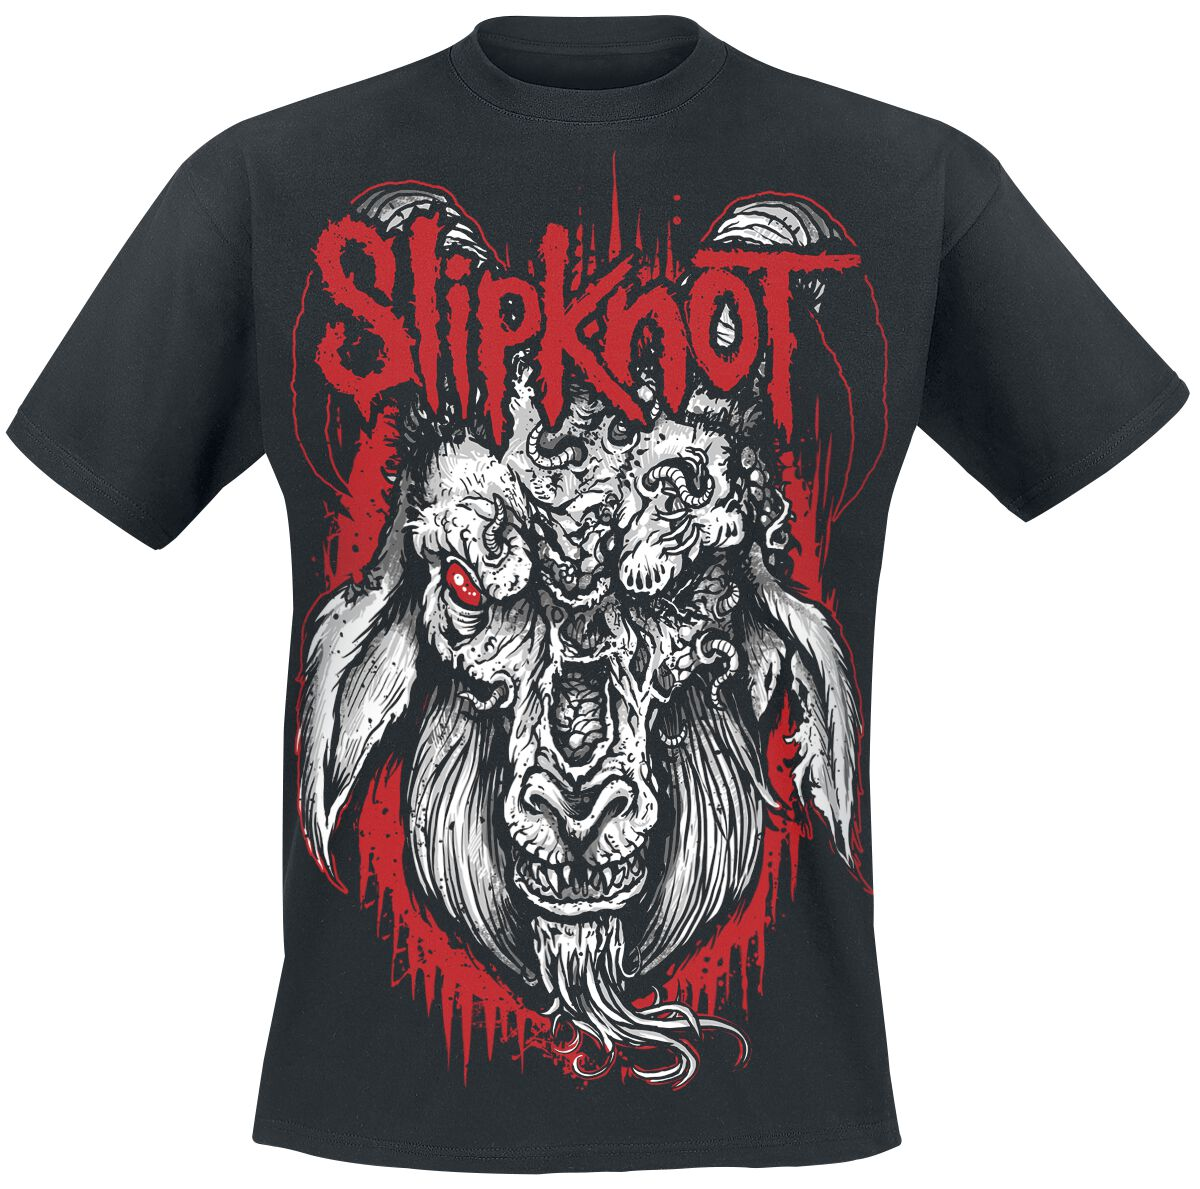 Image of   Slipknot Rotting Goat T-Shirt sort